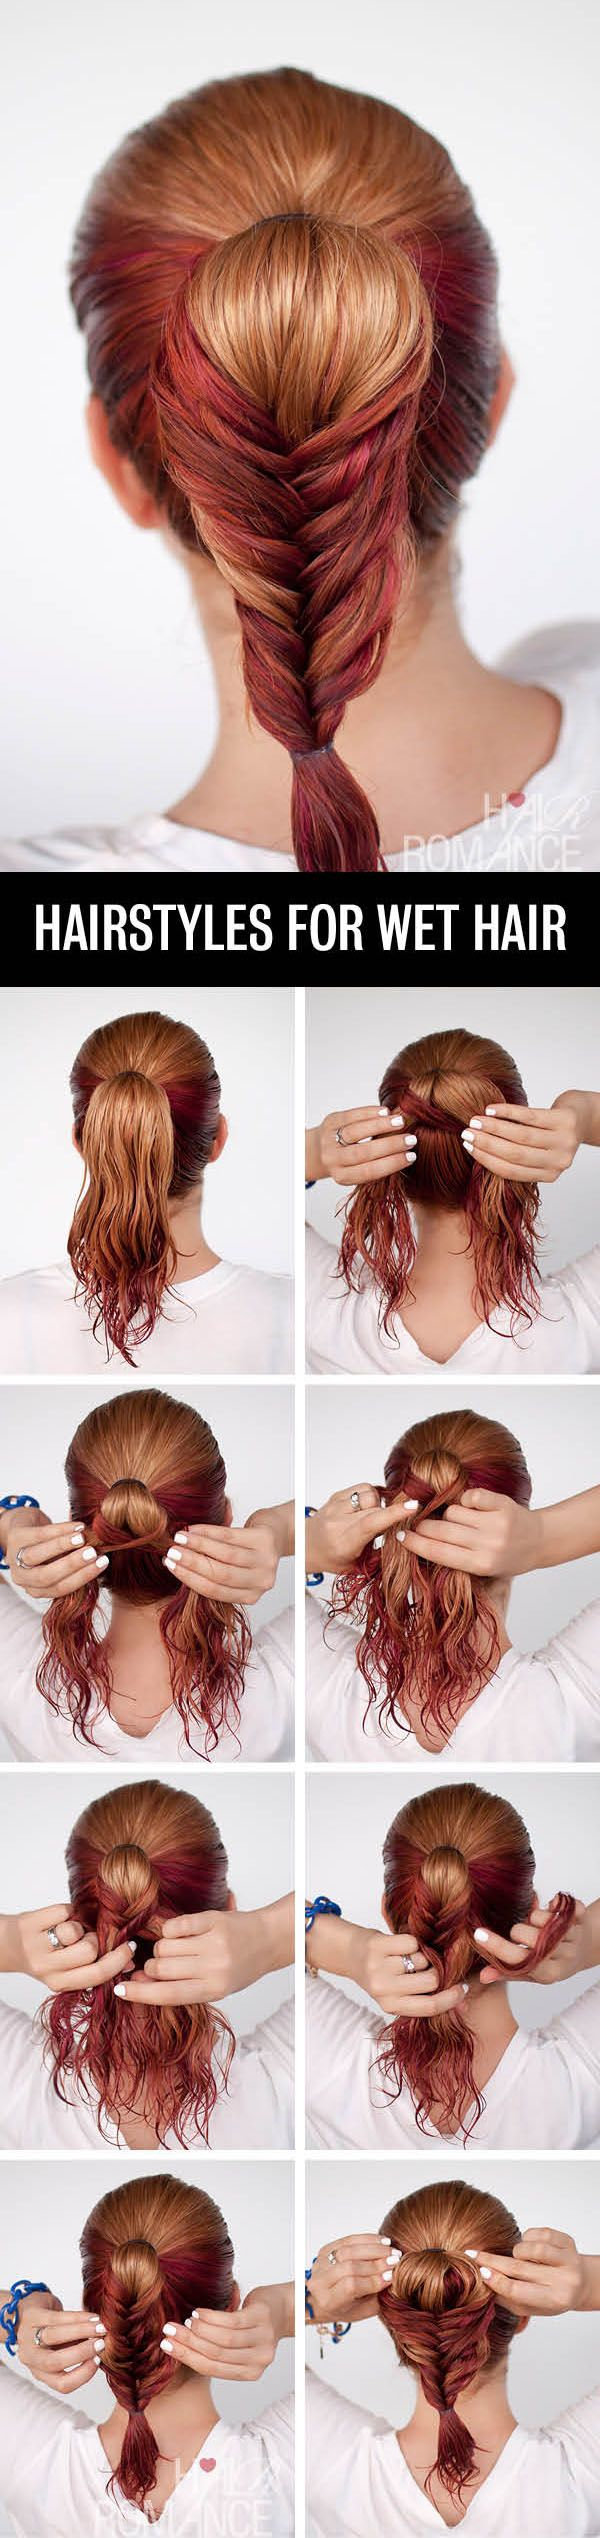 Get ready fast with easy hairstyle tutorials for wet hair beauty